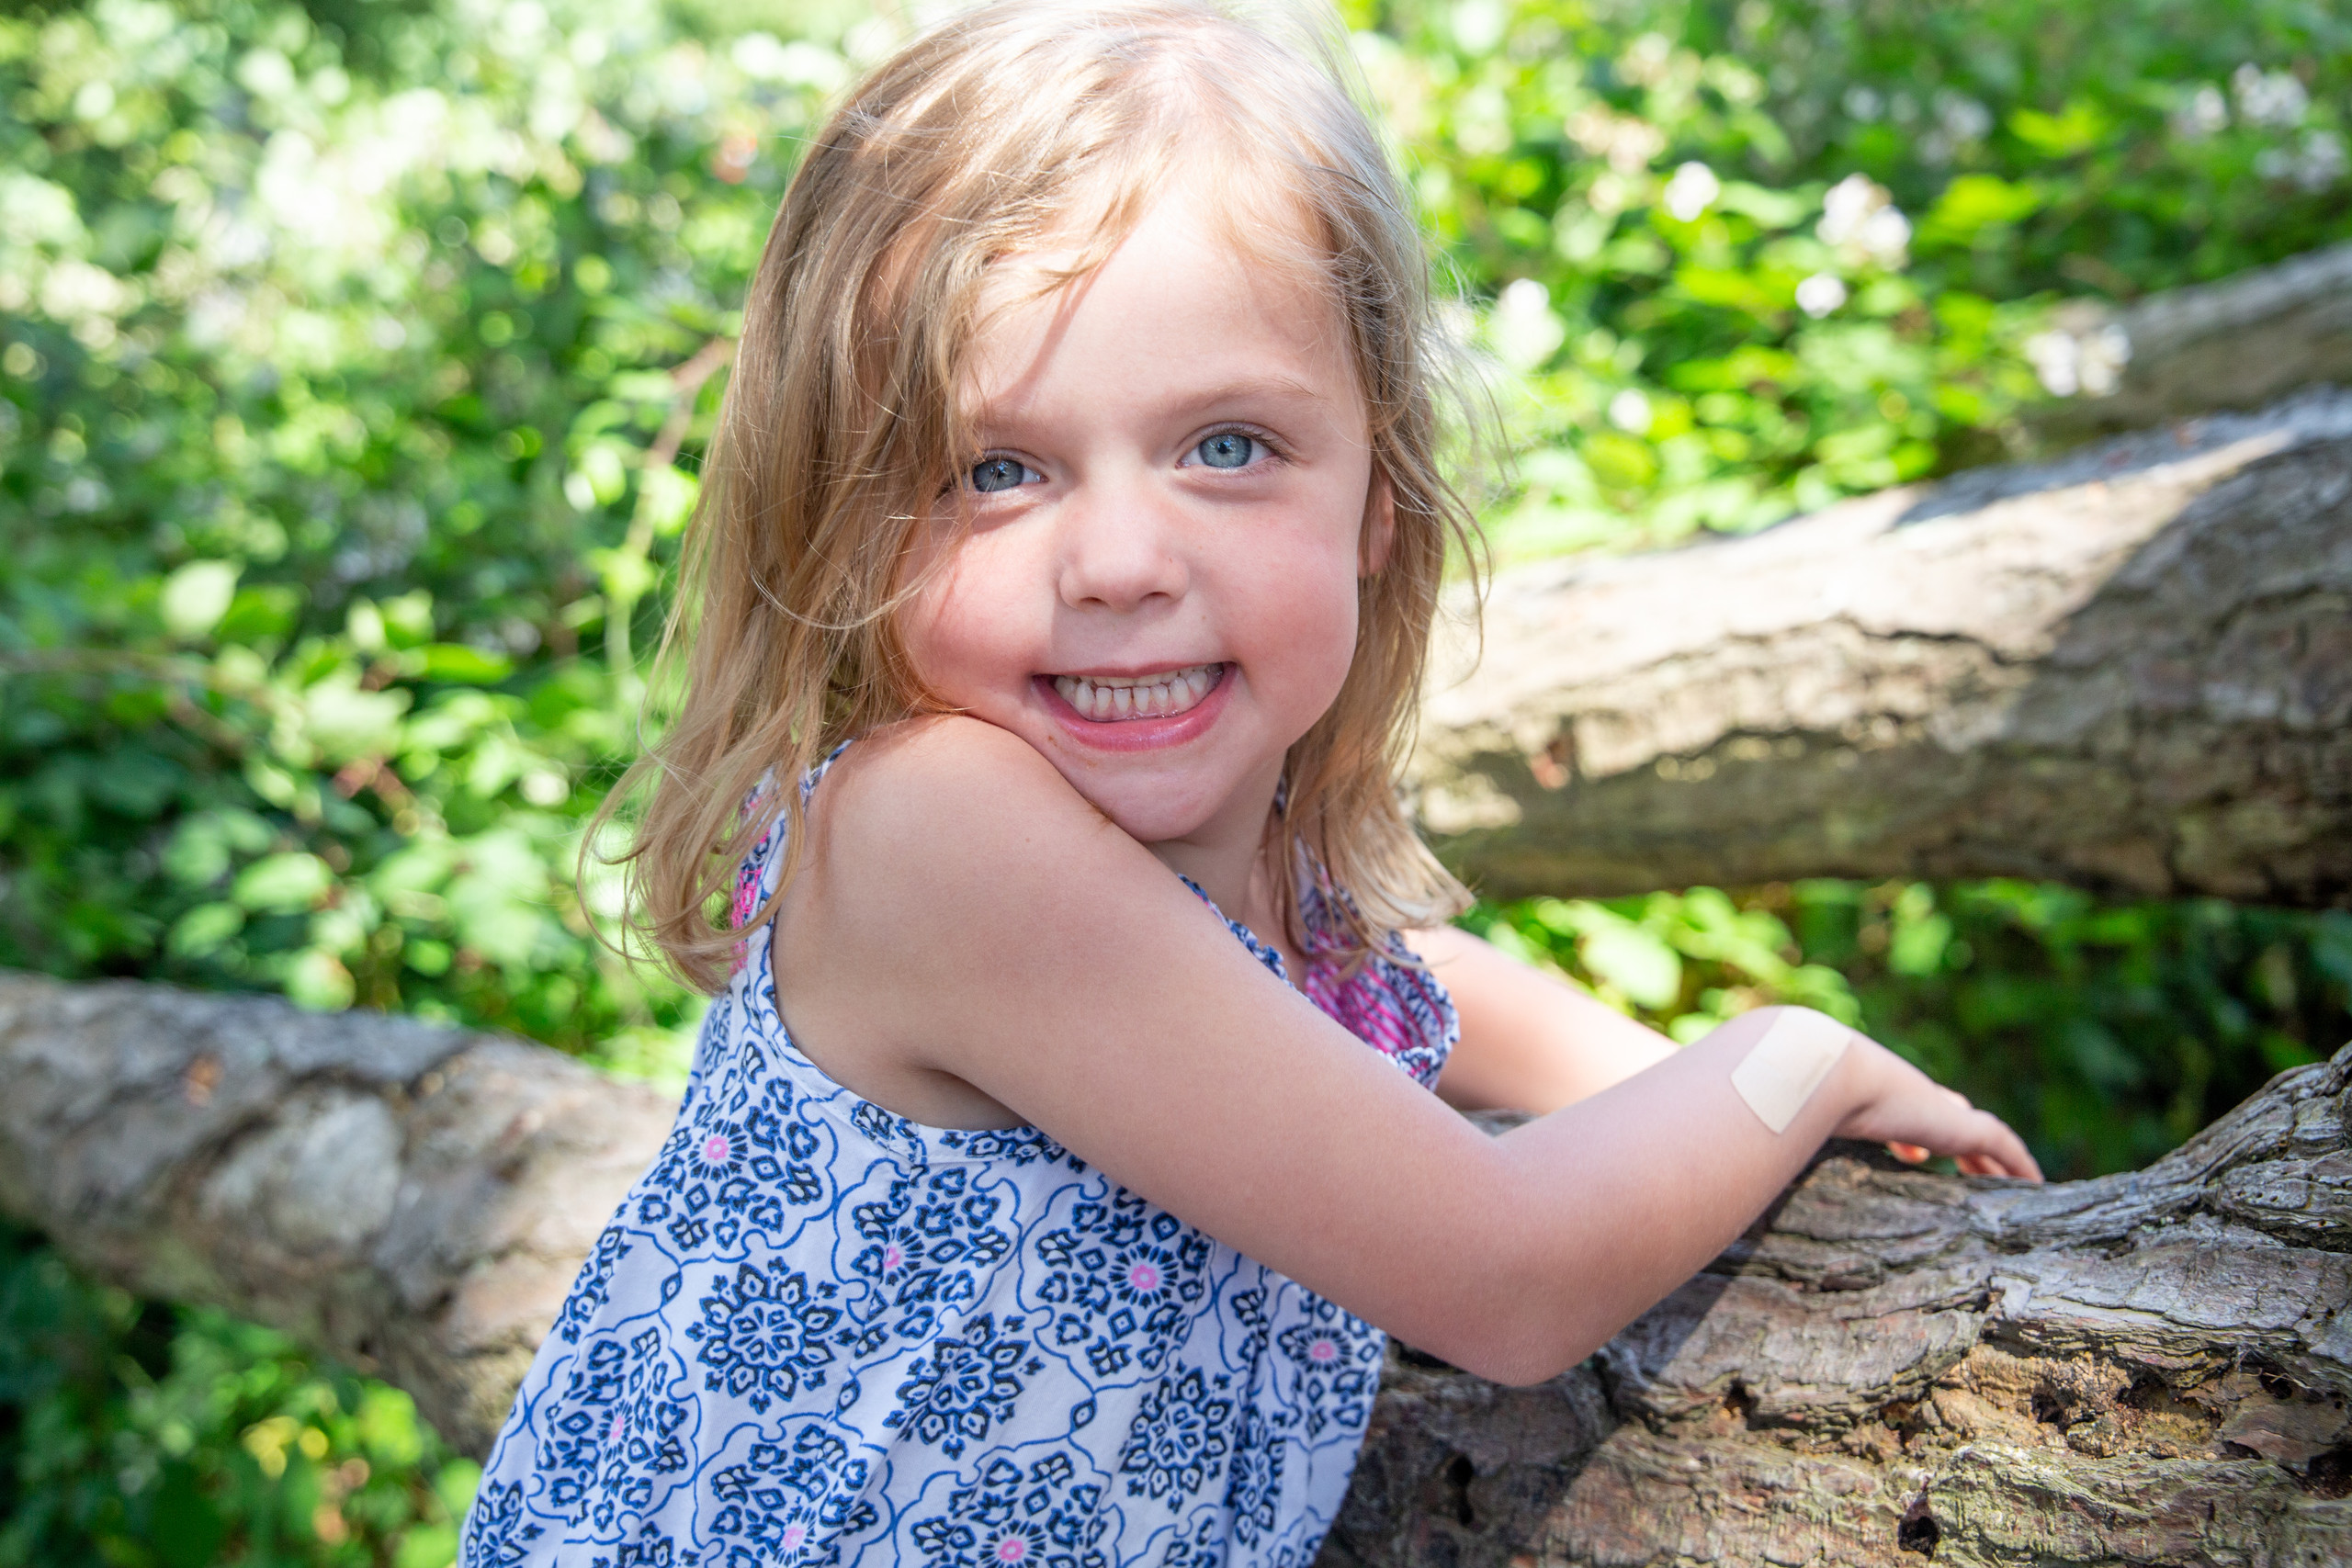 happy moment for a girl as she poses by a tree